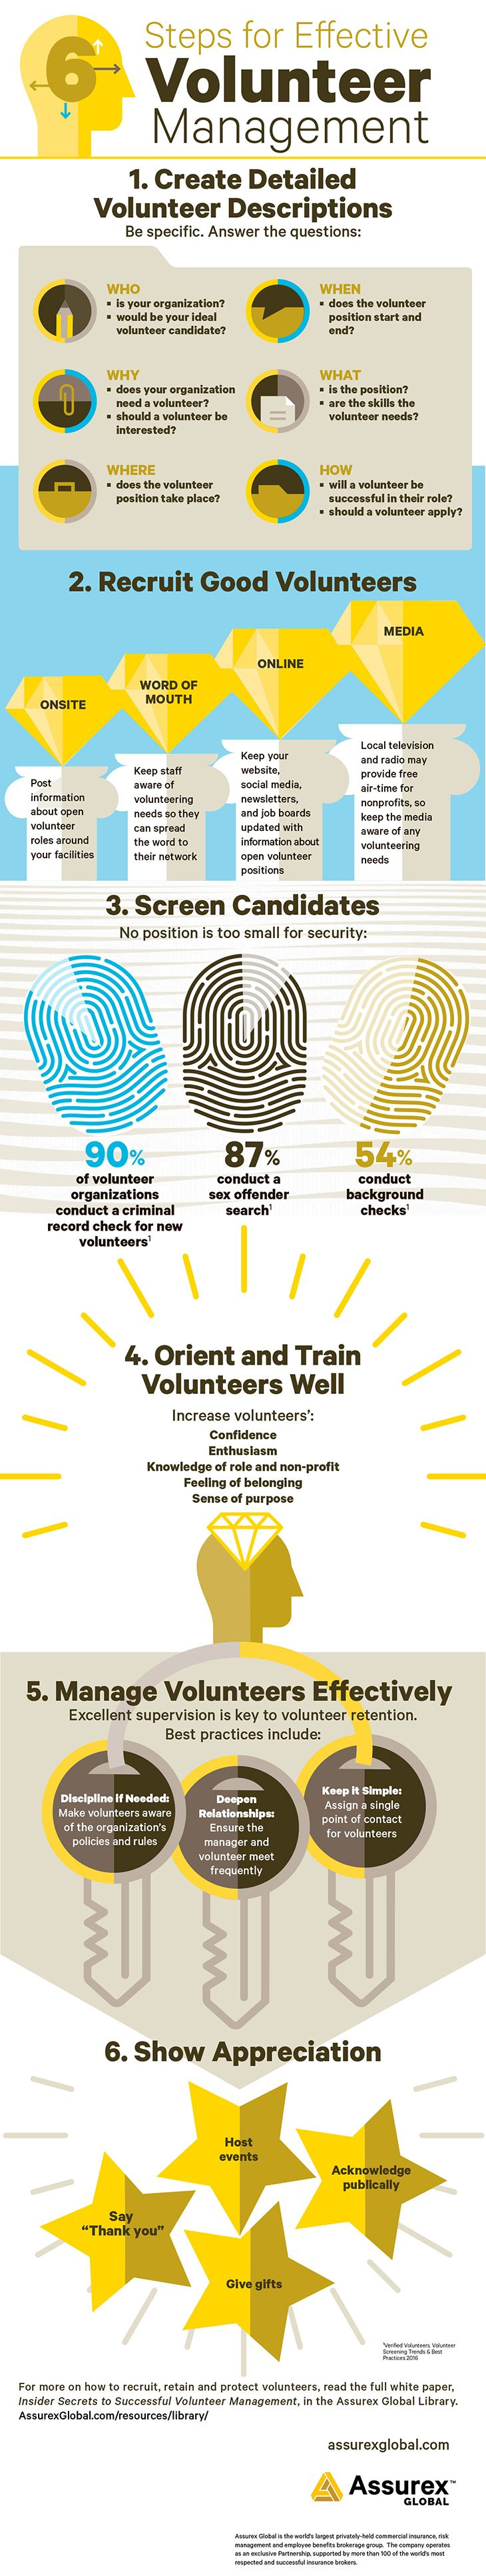 volunteer-management-infographic-assurex-global